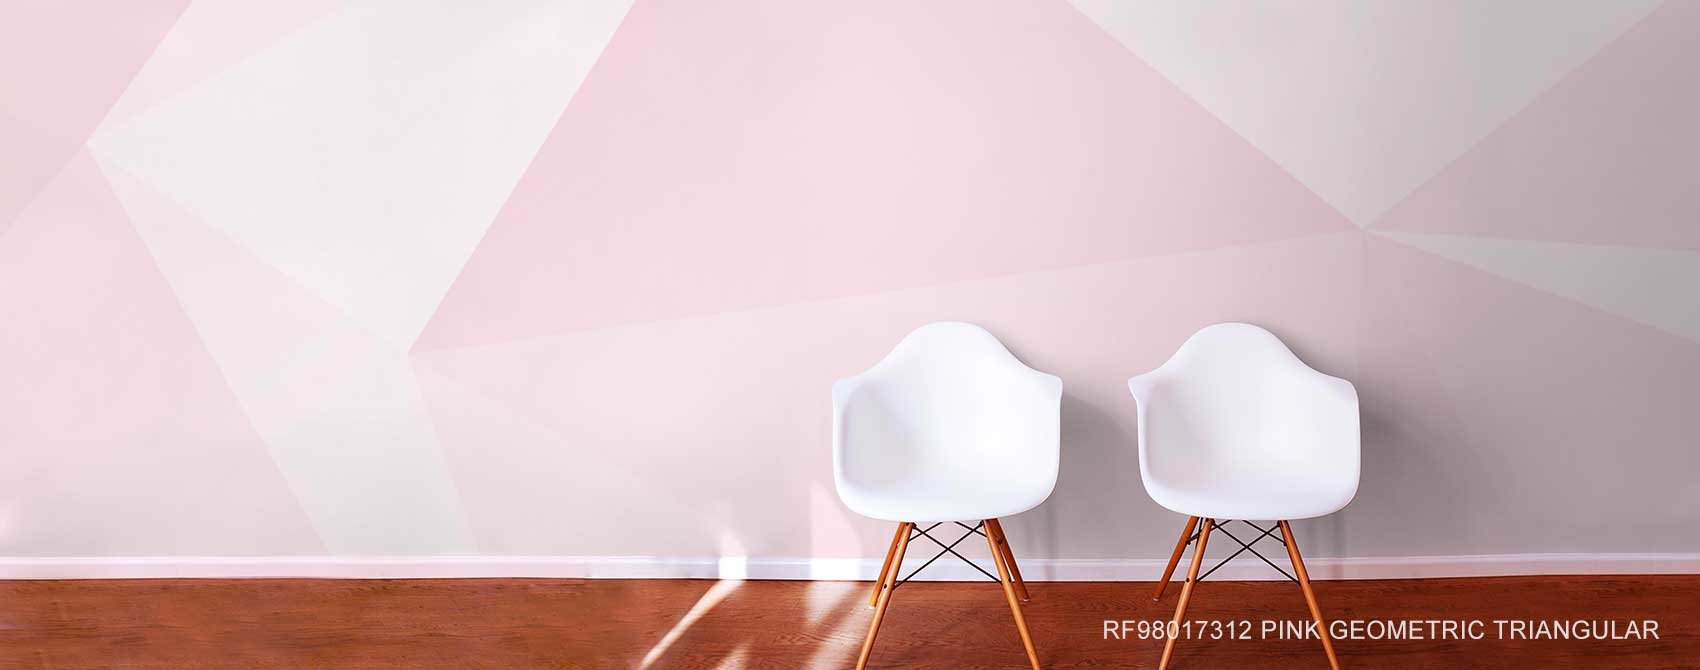 Pink Geometric Triangular Wall Mural